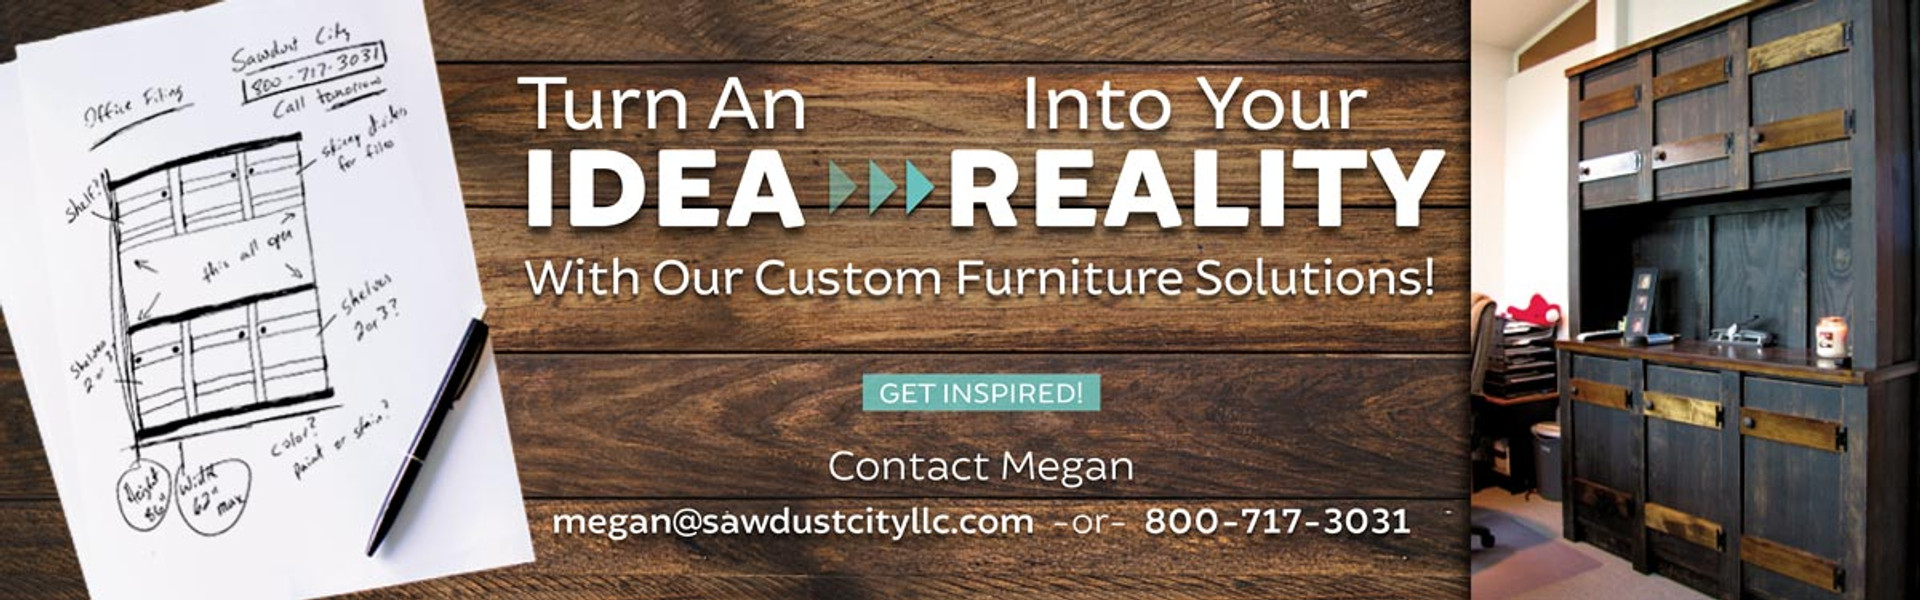 Turn An Idea Into Reality - With Sawdust City Custom Furniture Solutions! Contact megan@sawdustcityllc.com